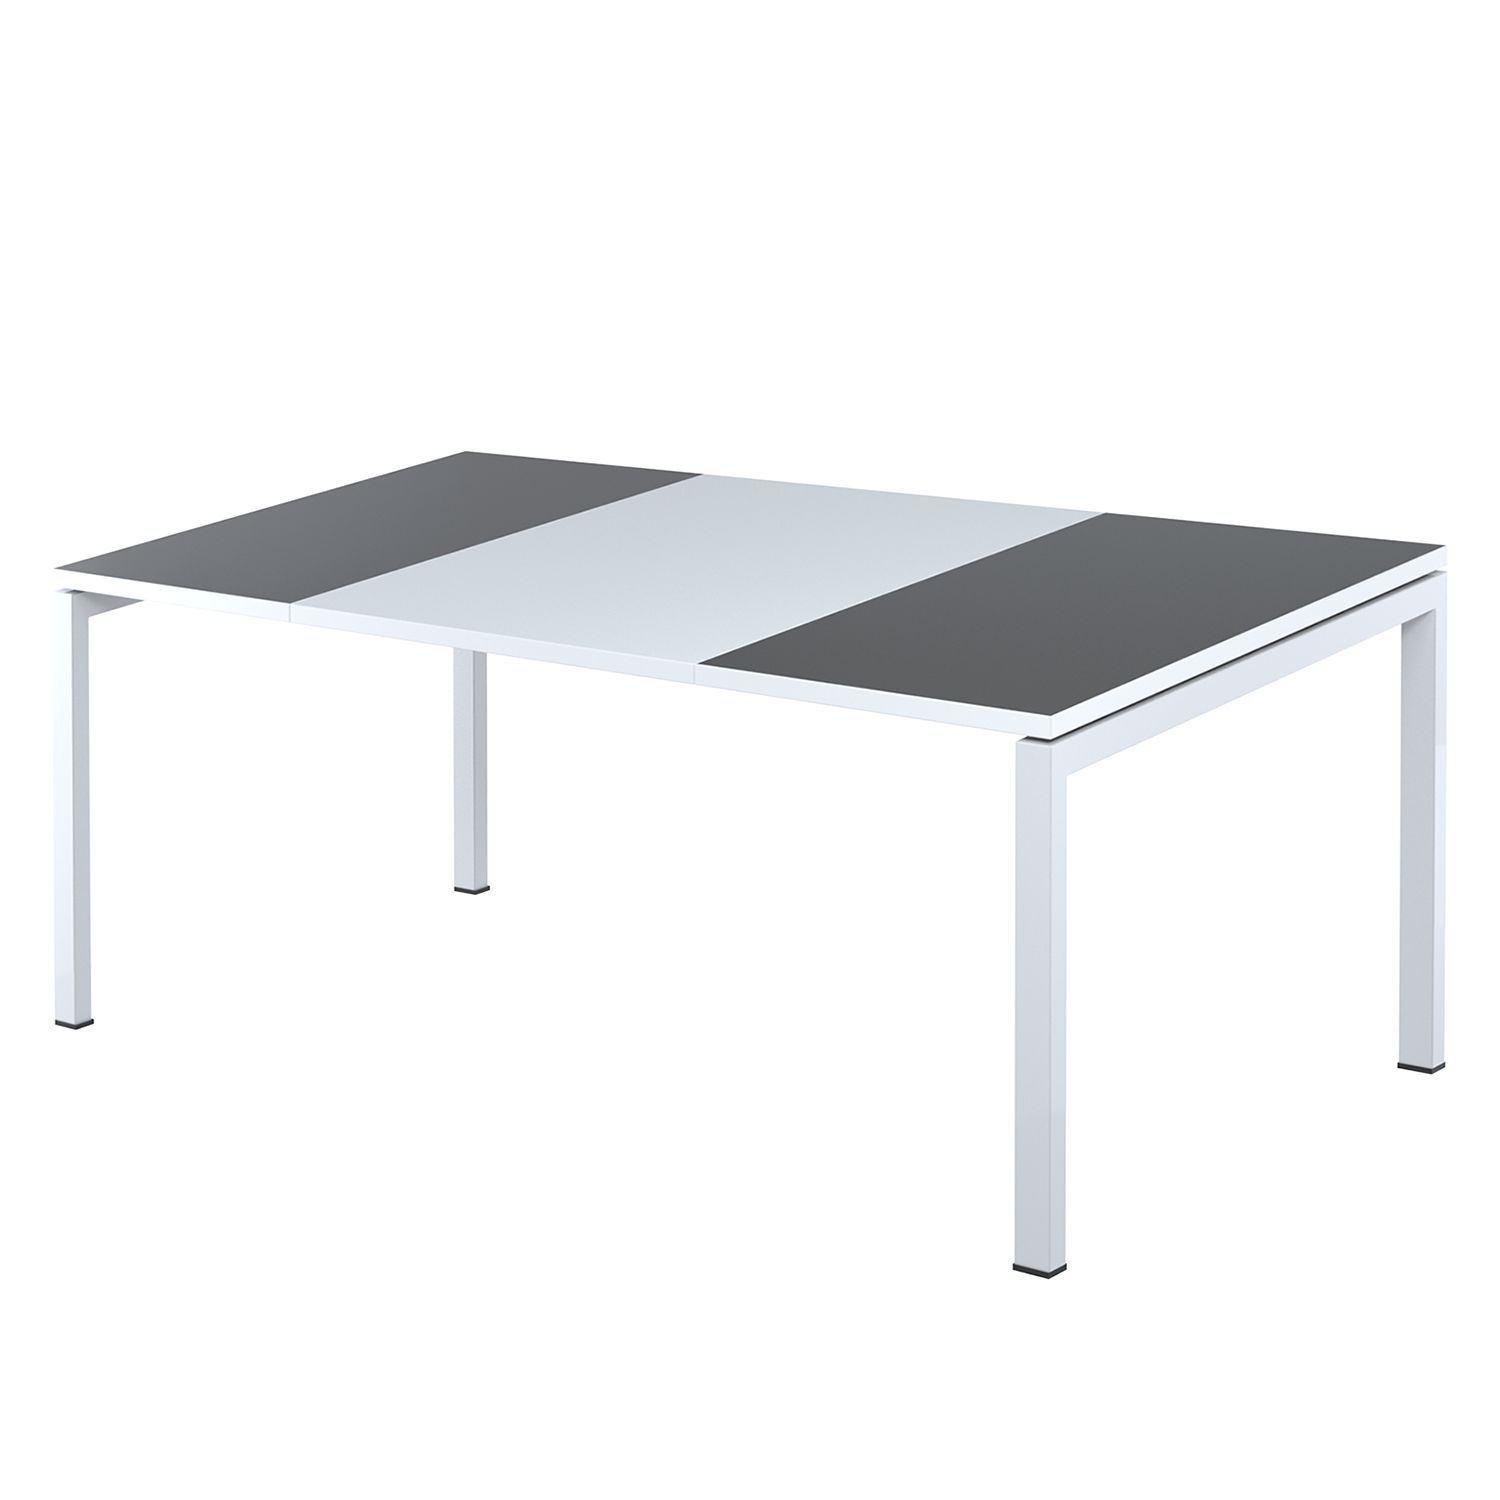 Bureau easyDesk - Wit/antracietkleurig - 180x80cm, easy Office und Paperflow